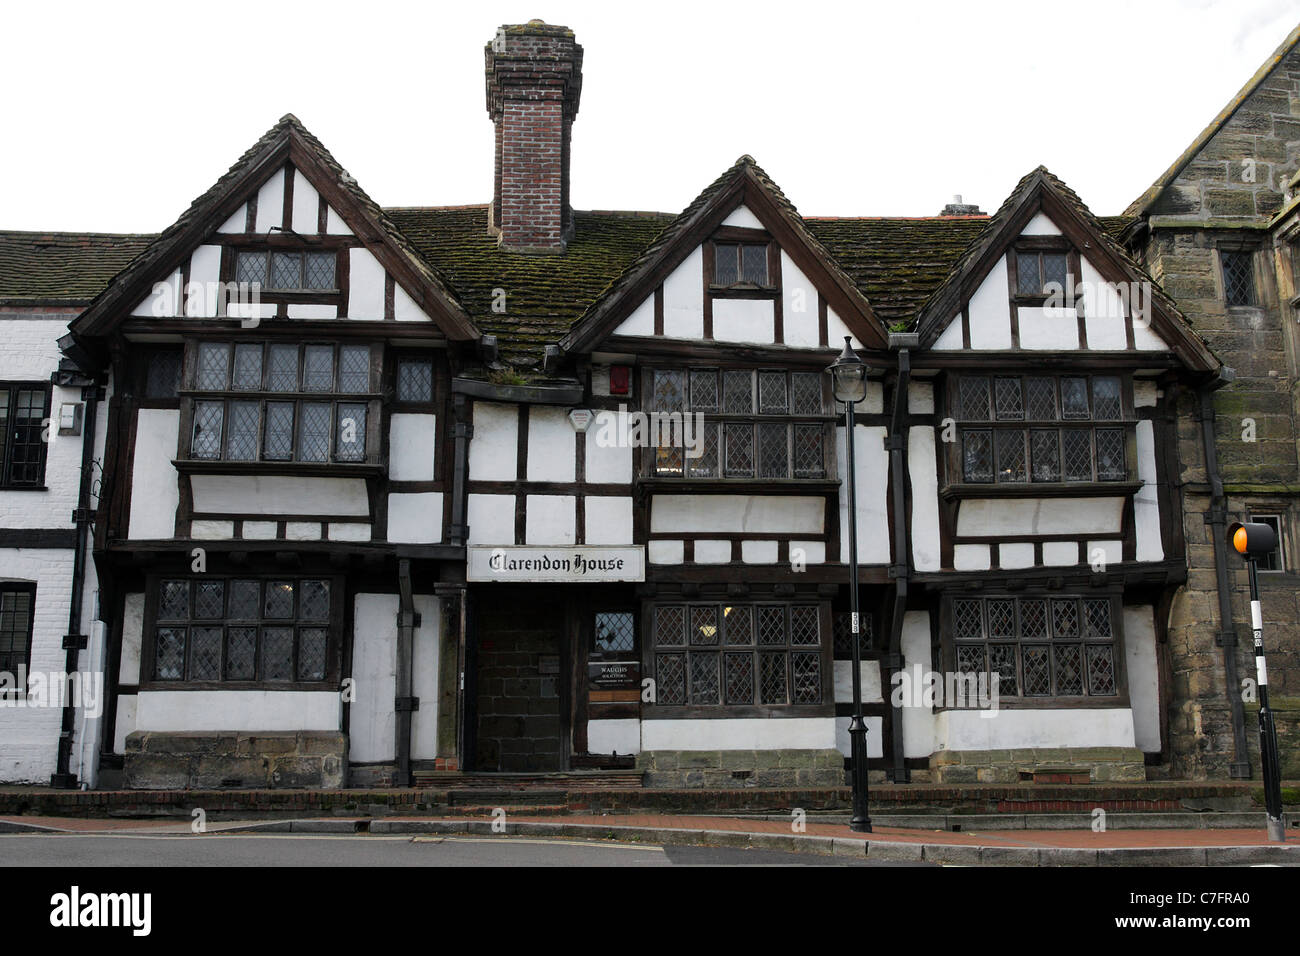 Tudor architecture in High St, East Grinstead  The longest